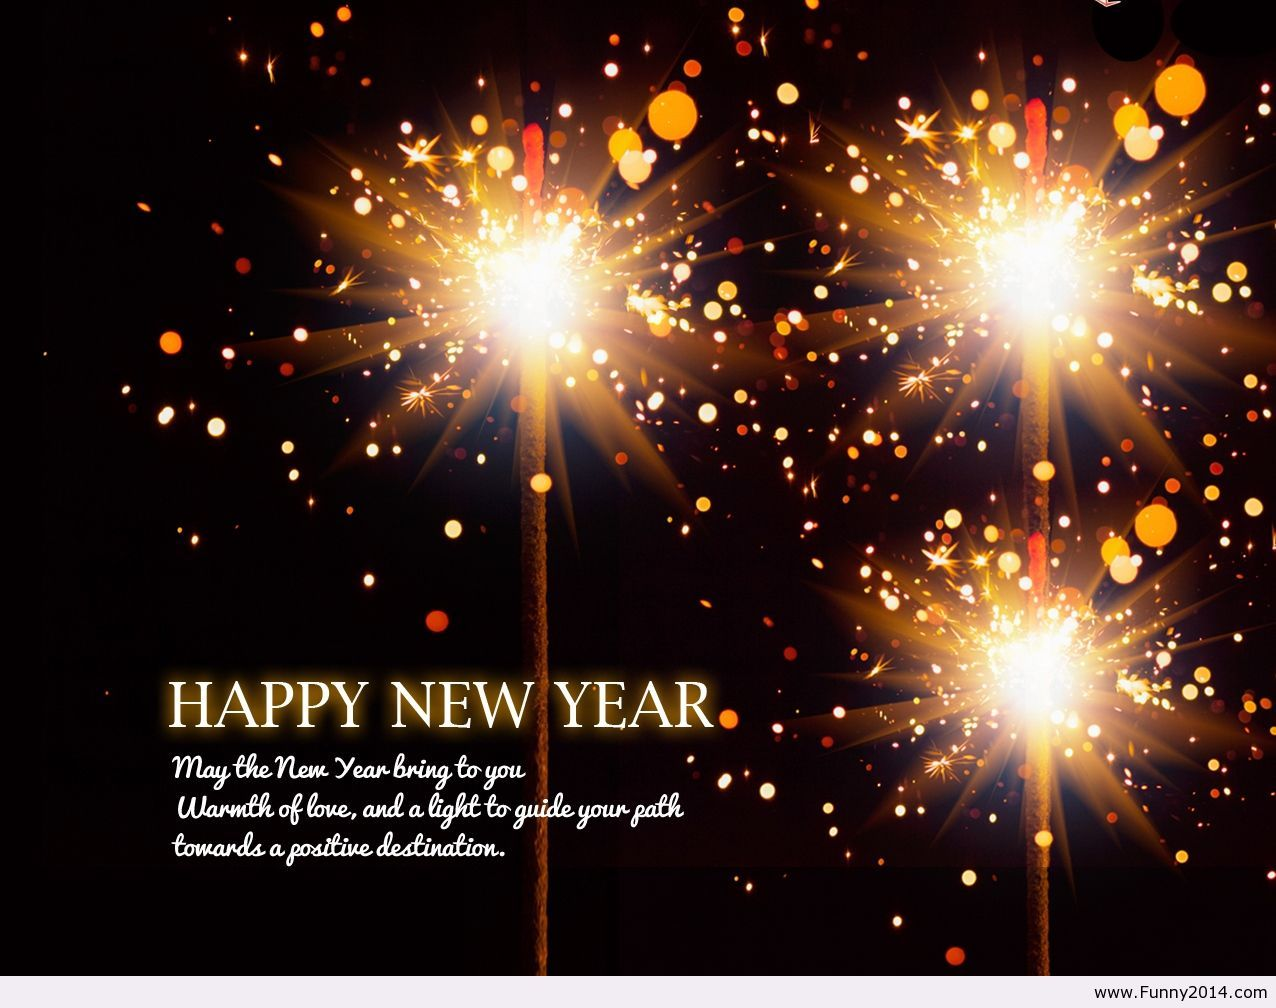 Happy new year quotes wallpapers happy new year 2016 pinterest may the new year bring you warmth of lovehappy new year friend new year happy new year happy new year quote happy new year greeting new year quote kristyandbryce Images